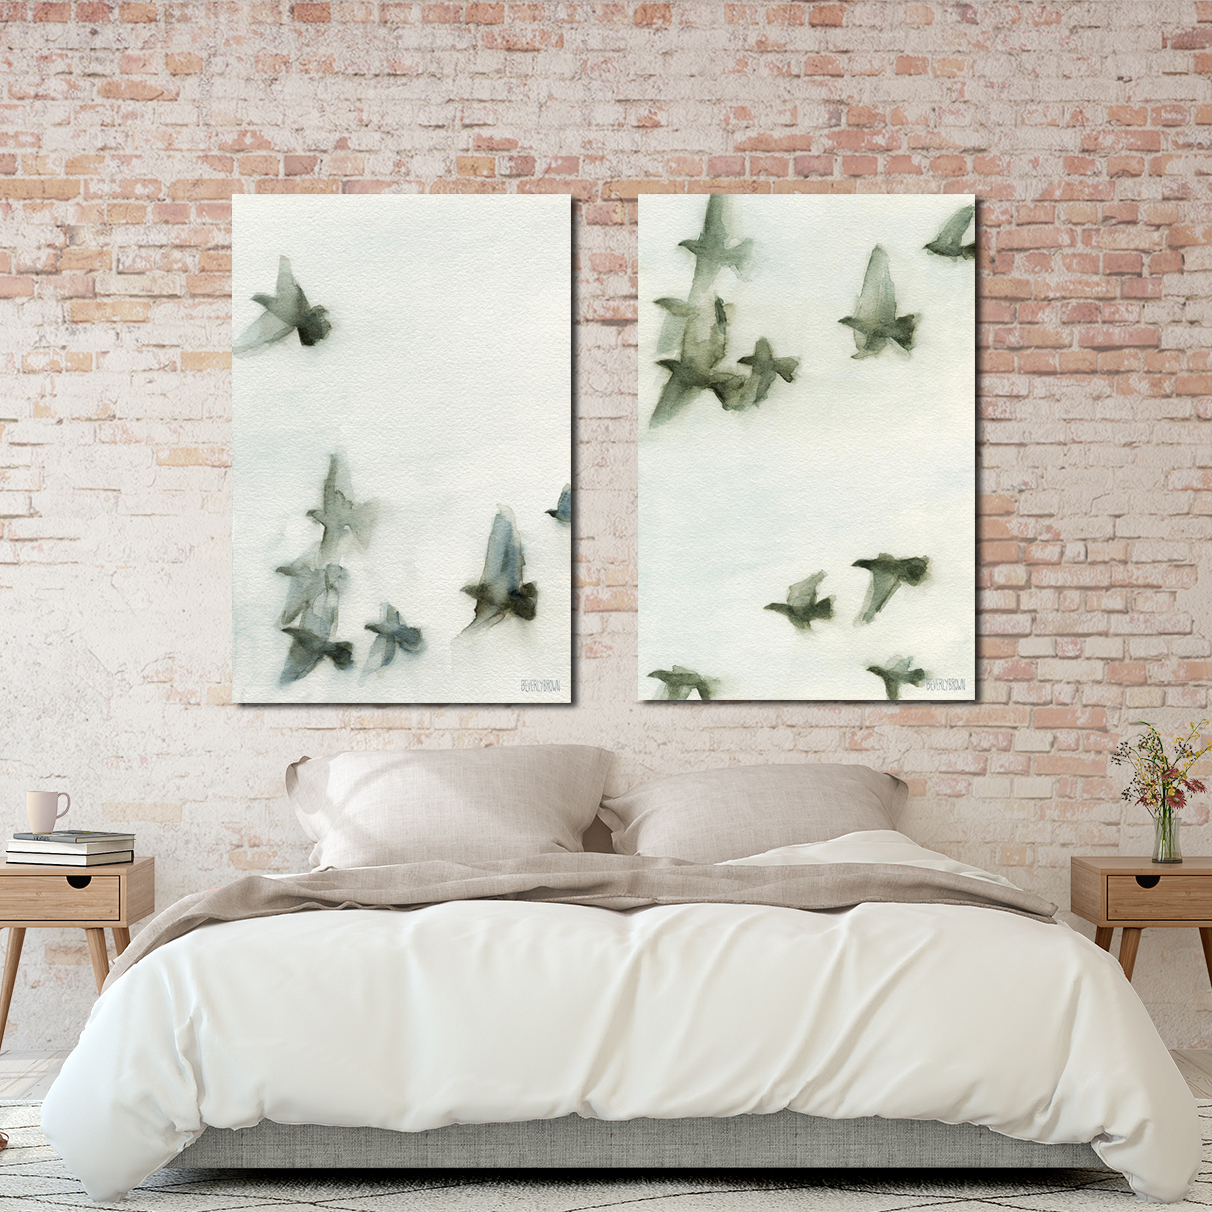 Set of two grey and blue canvas birds in flight wall art prints over the bed. www.beverlybrown.com